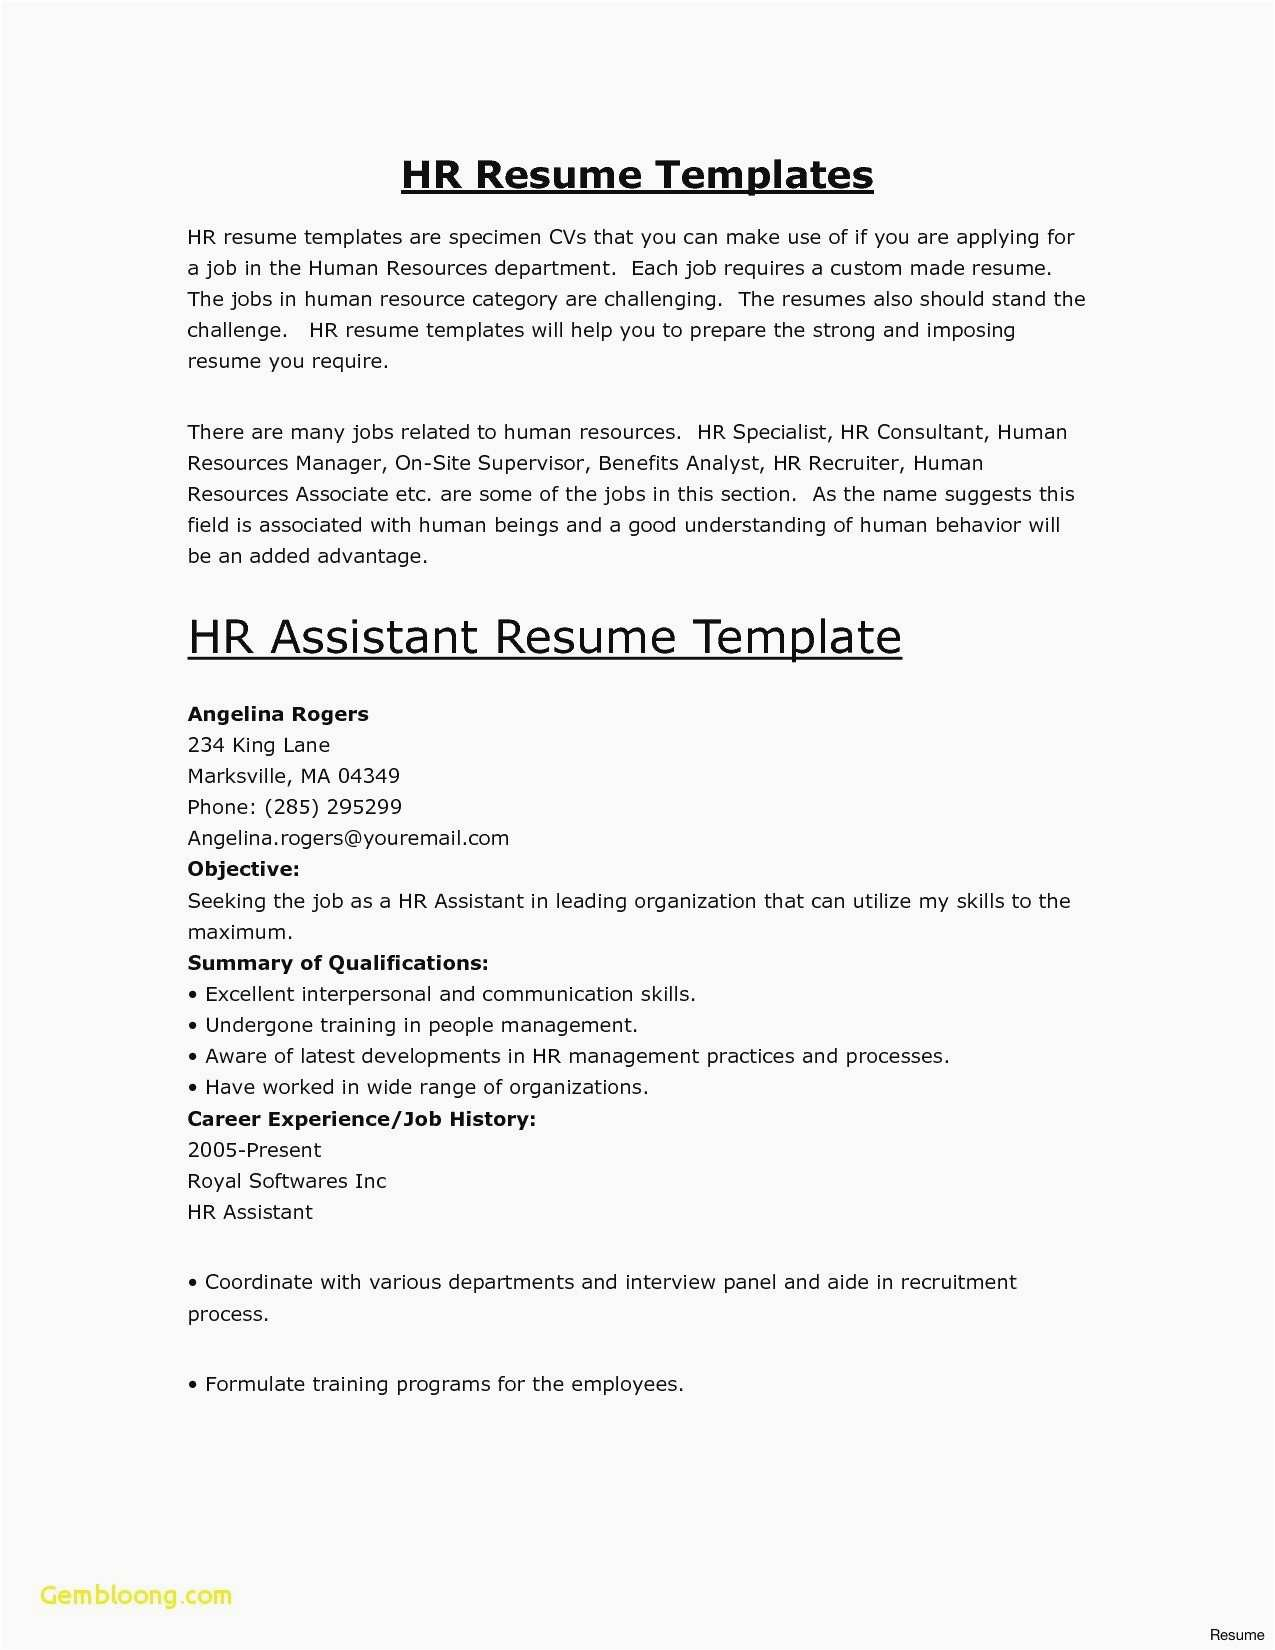 National Resume Writers association - 23 New Professional Resume Service Simple